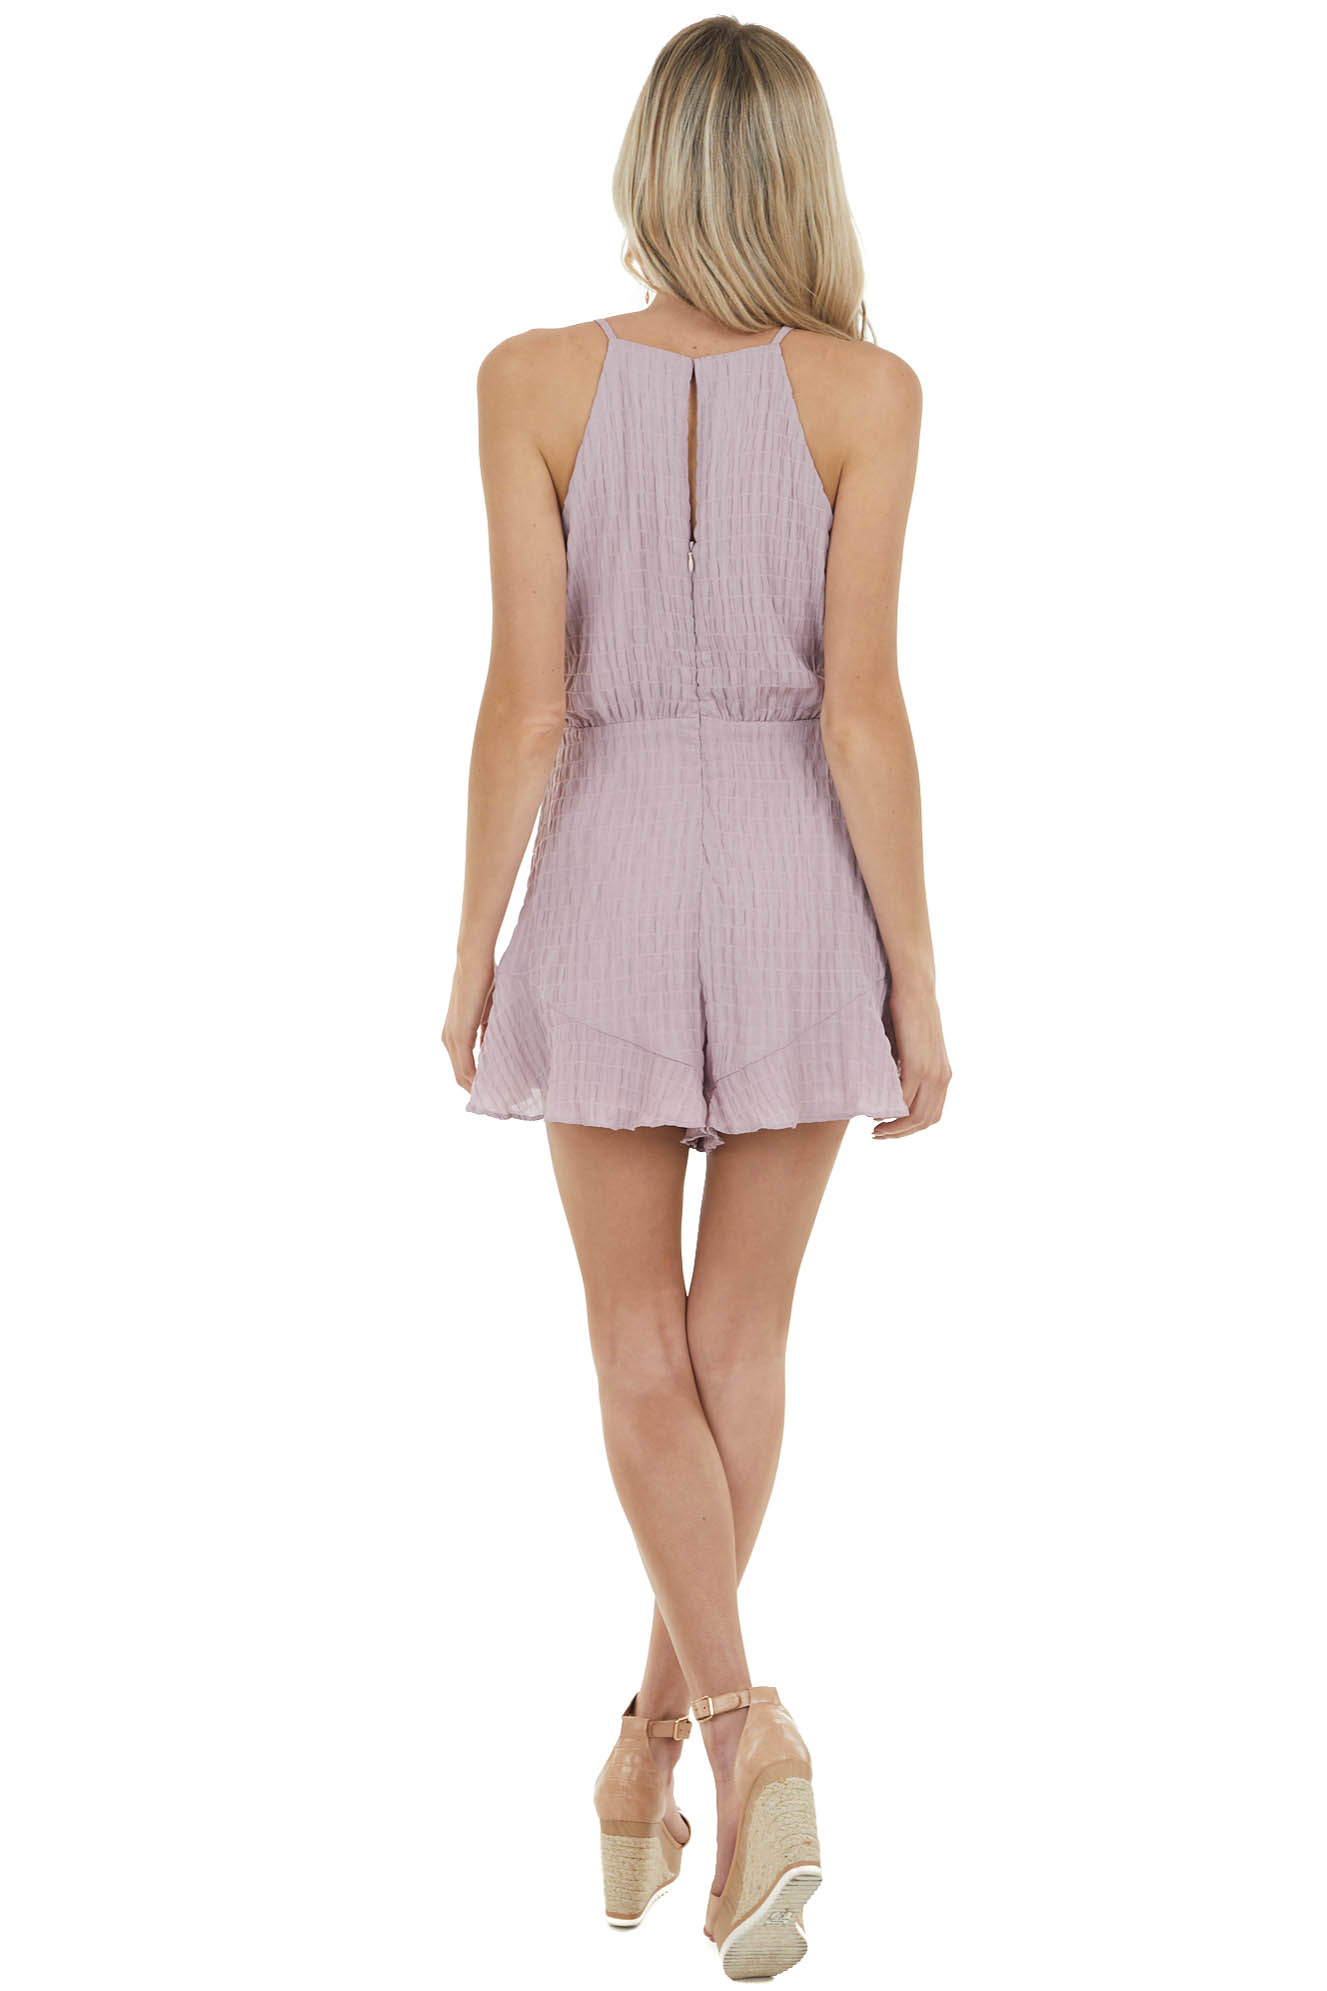 Dusty Lavender Textured Romper with Spaghetti Straps